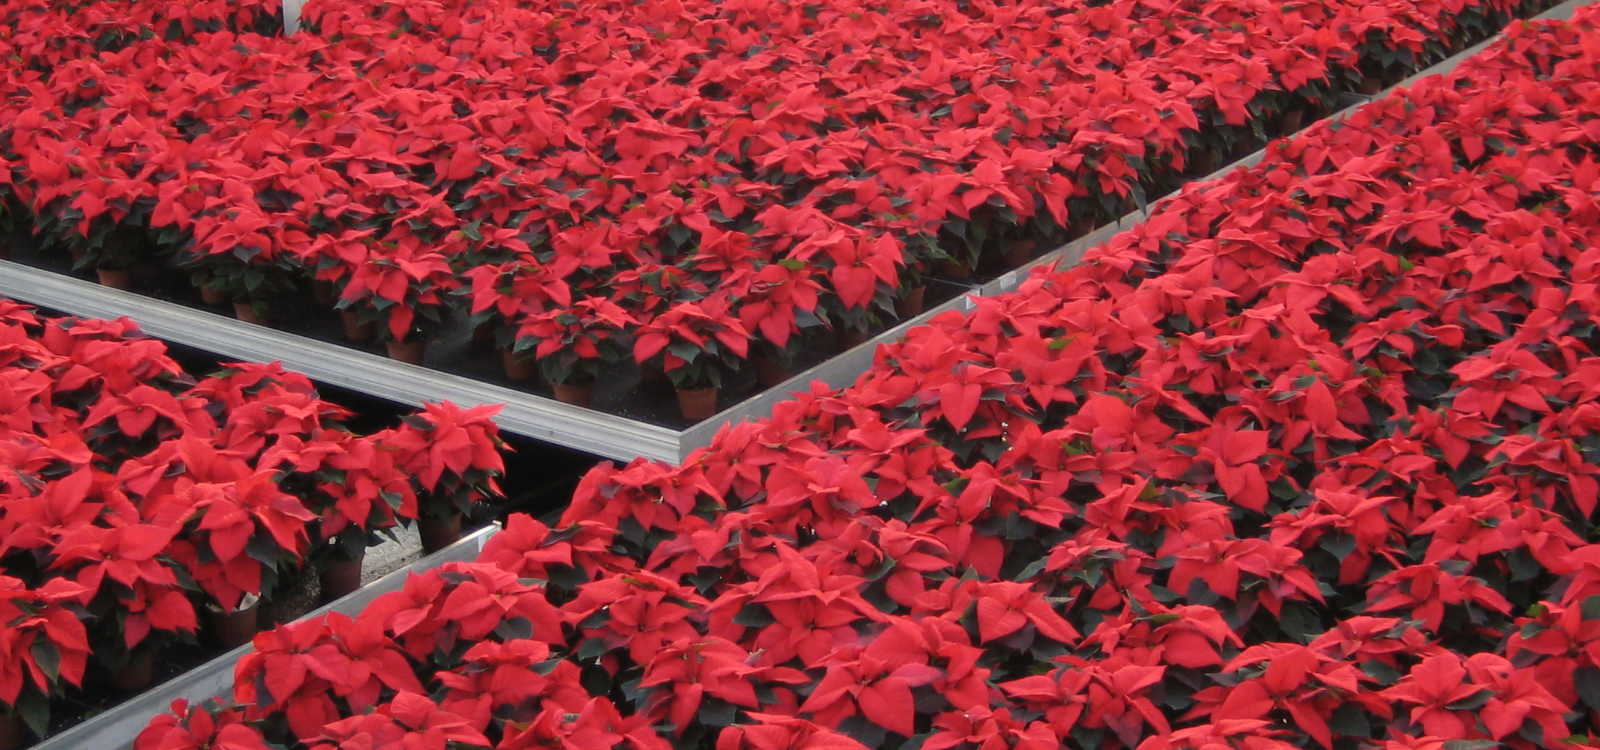 header-image-poinsettias.png